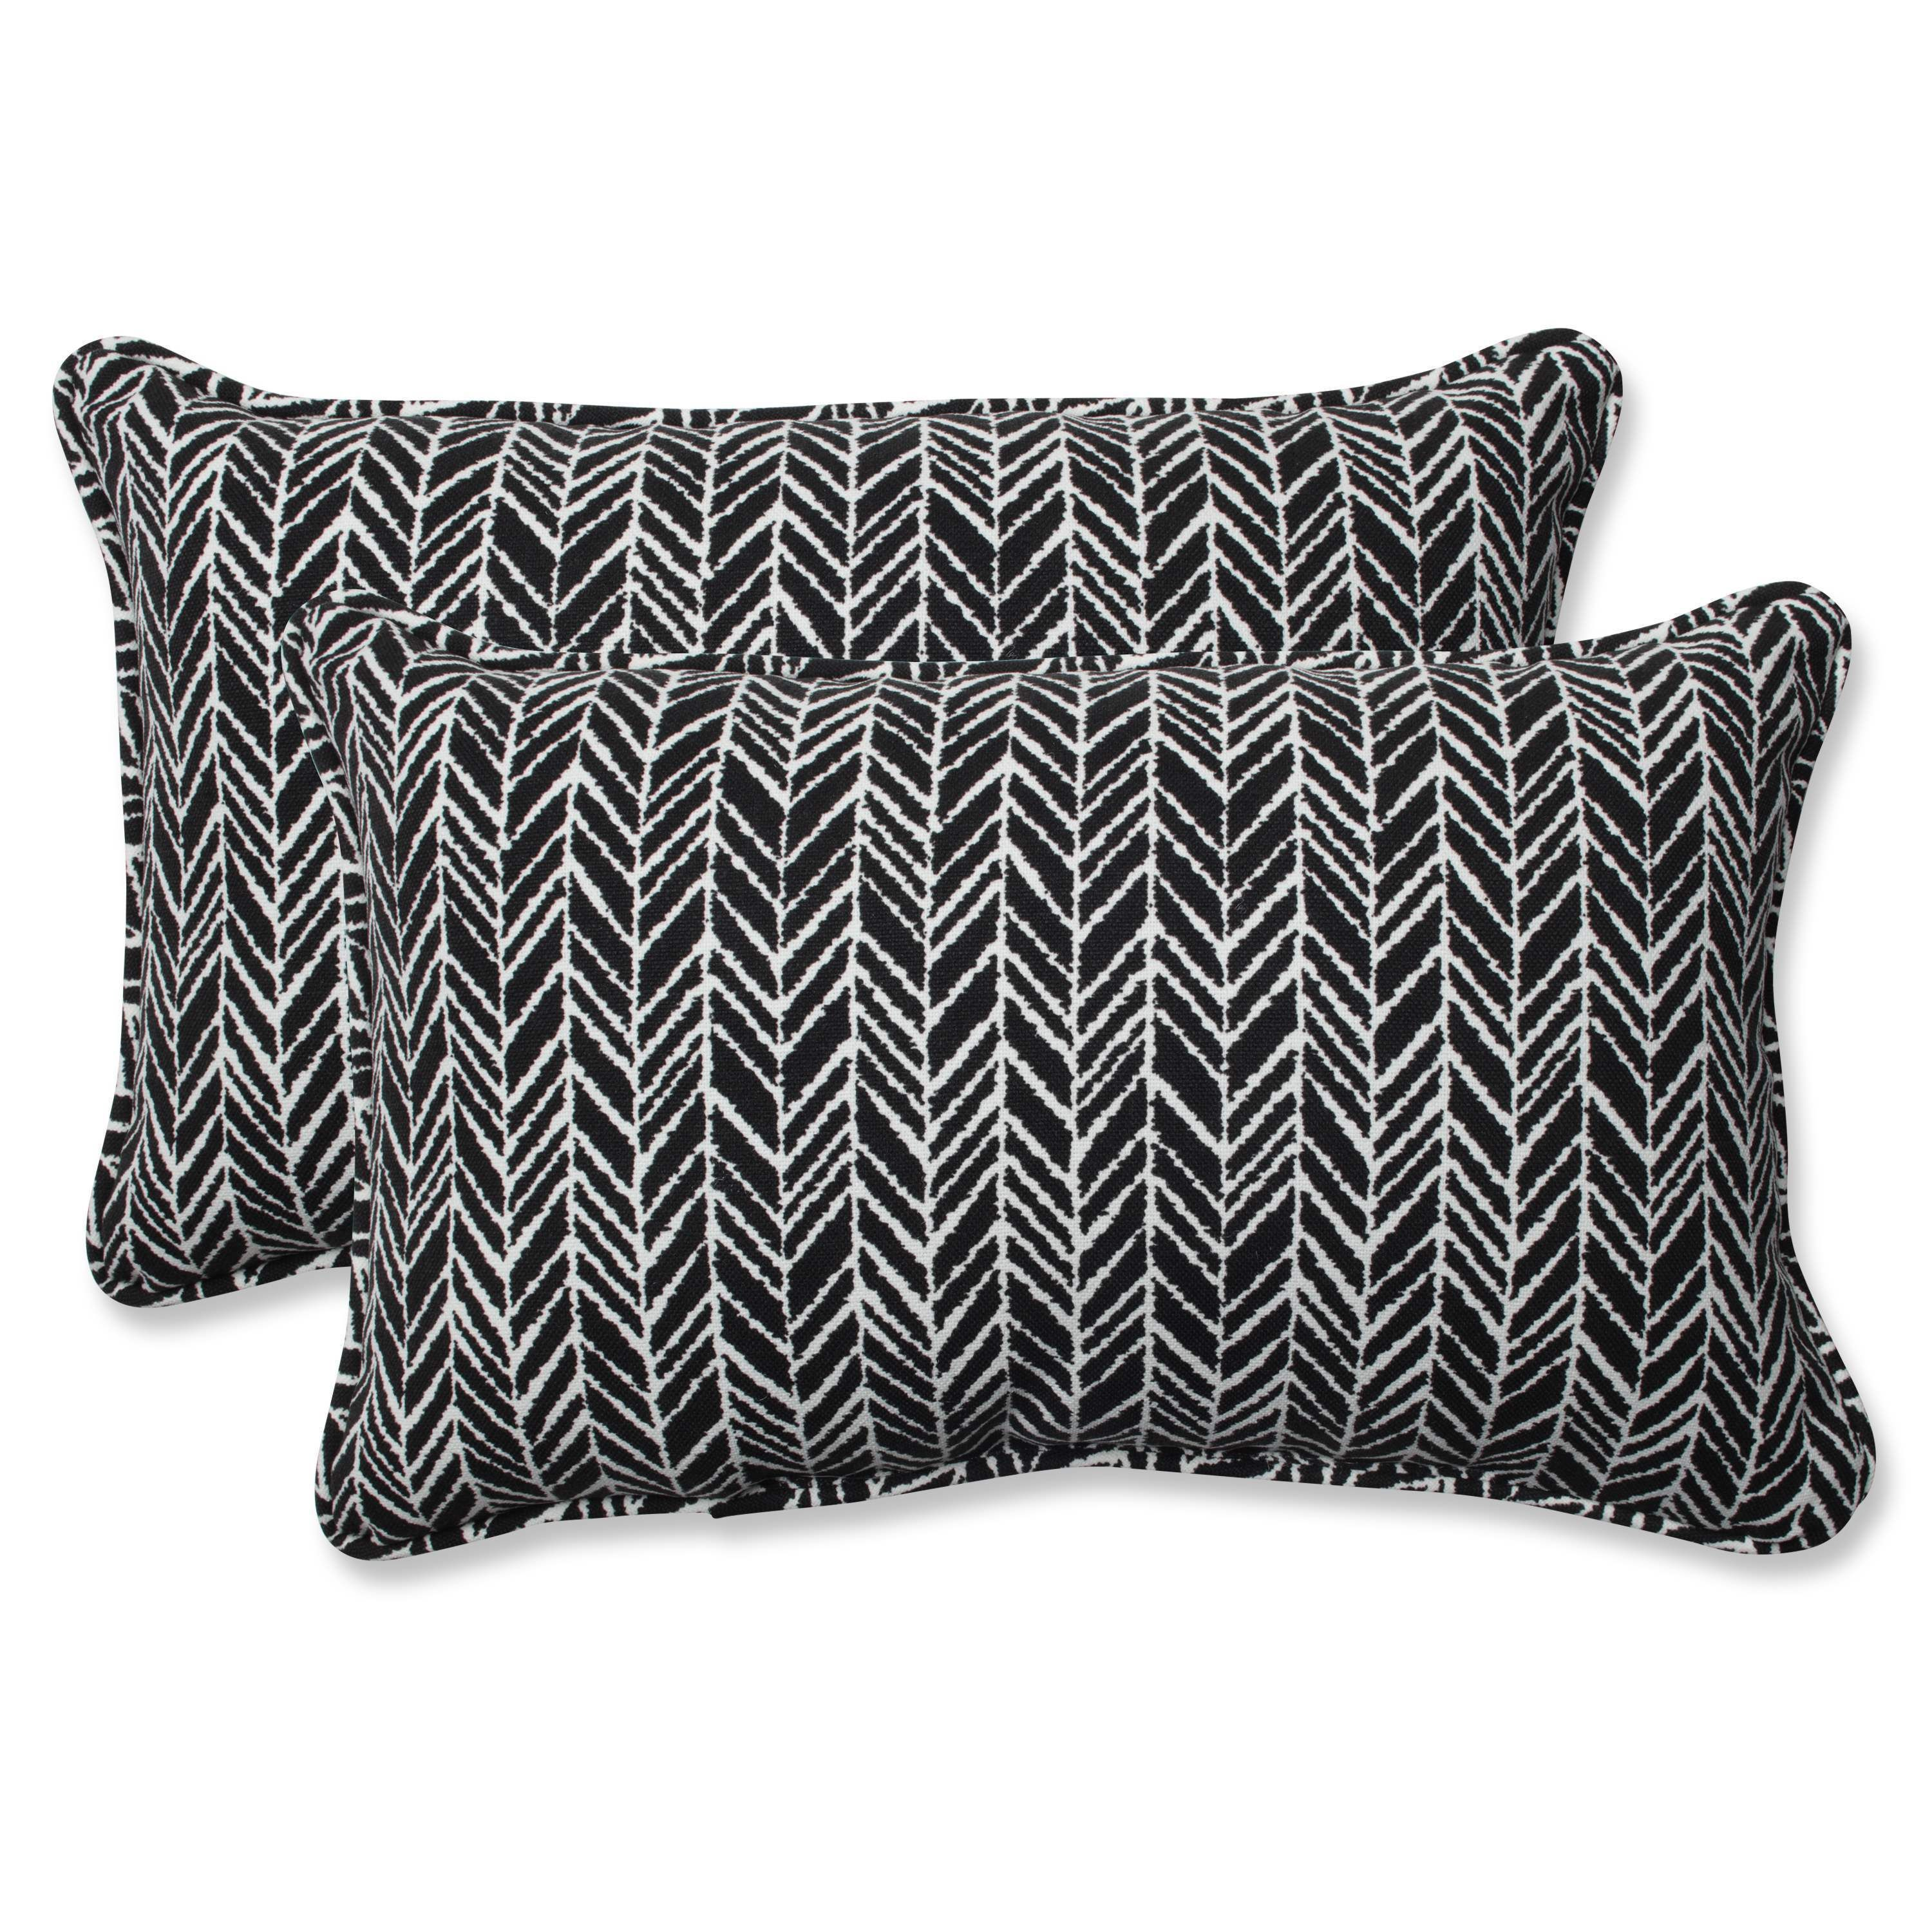 Pillow Perfect Outdoor Indoor Herringbone Night Rectangular Throw Pillow Set Of 2 24 5x16 5 Black Polyester Chevron Outdoor Cushion Products Perfect Pillow Throw Pillow Sets Pillow Set